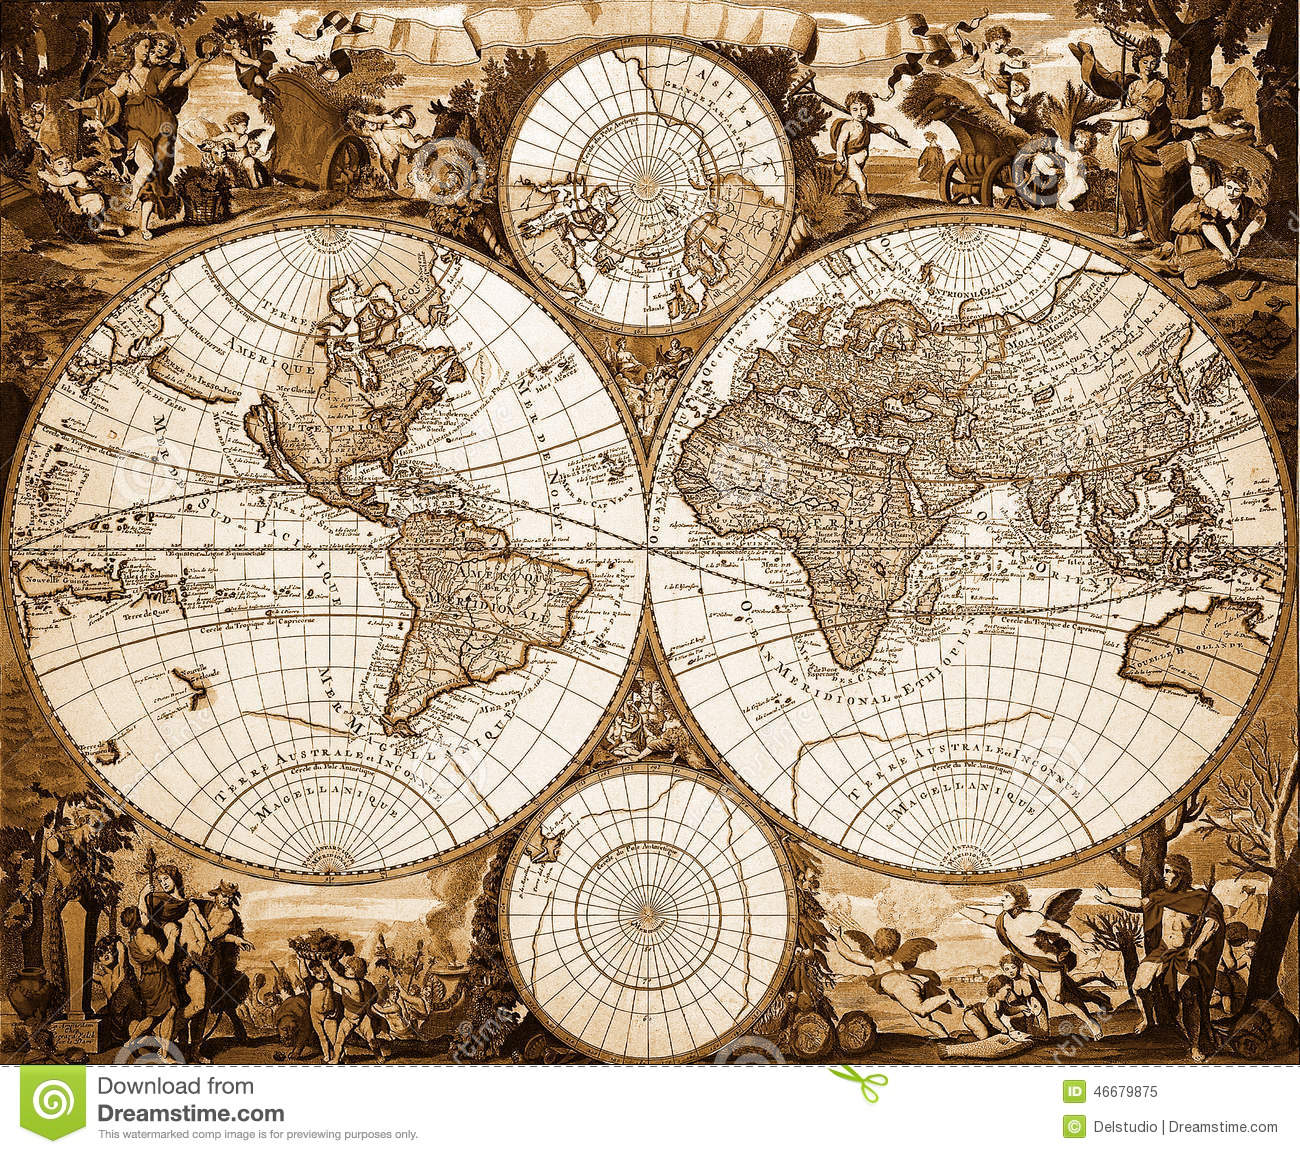 Vintage world map artsy gumiabroncs Image collections